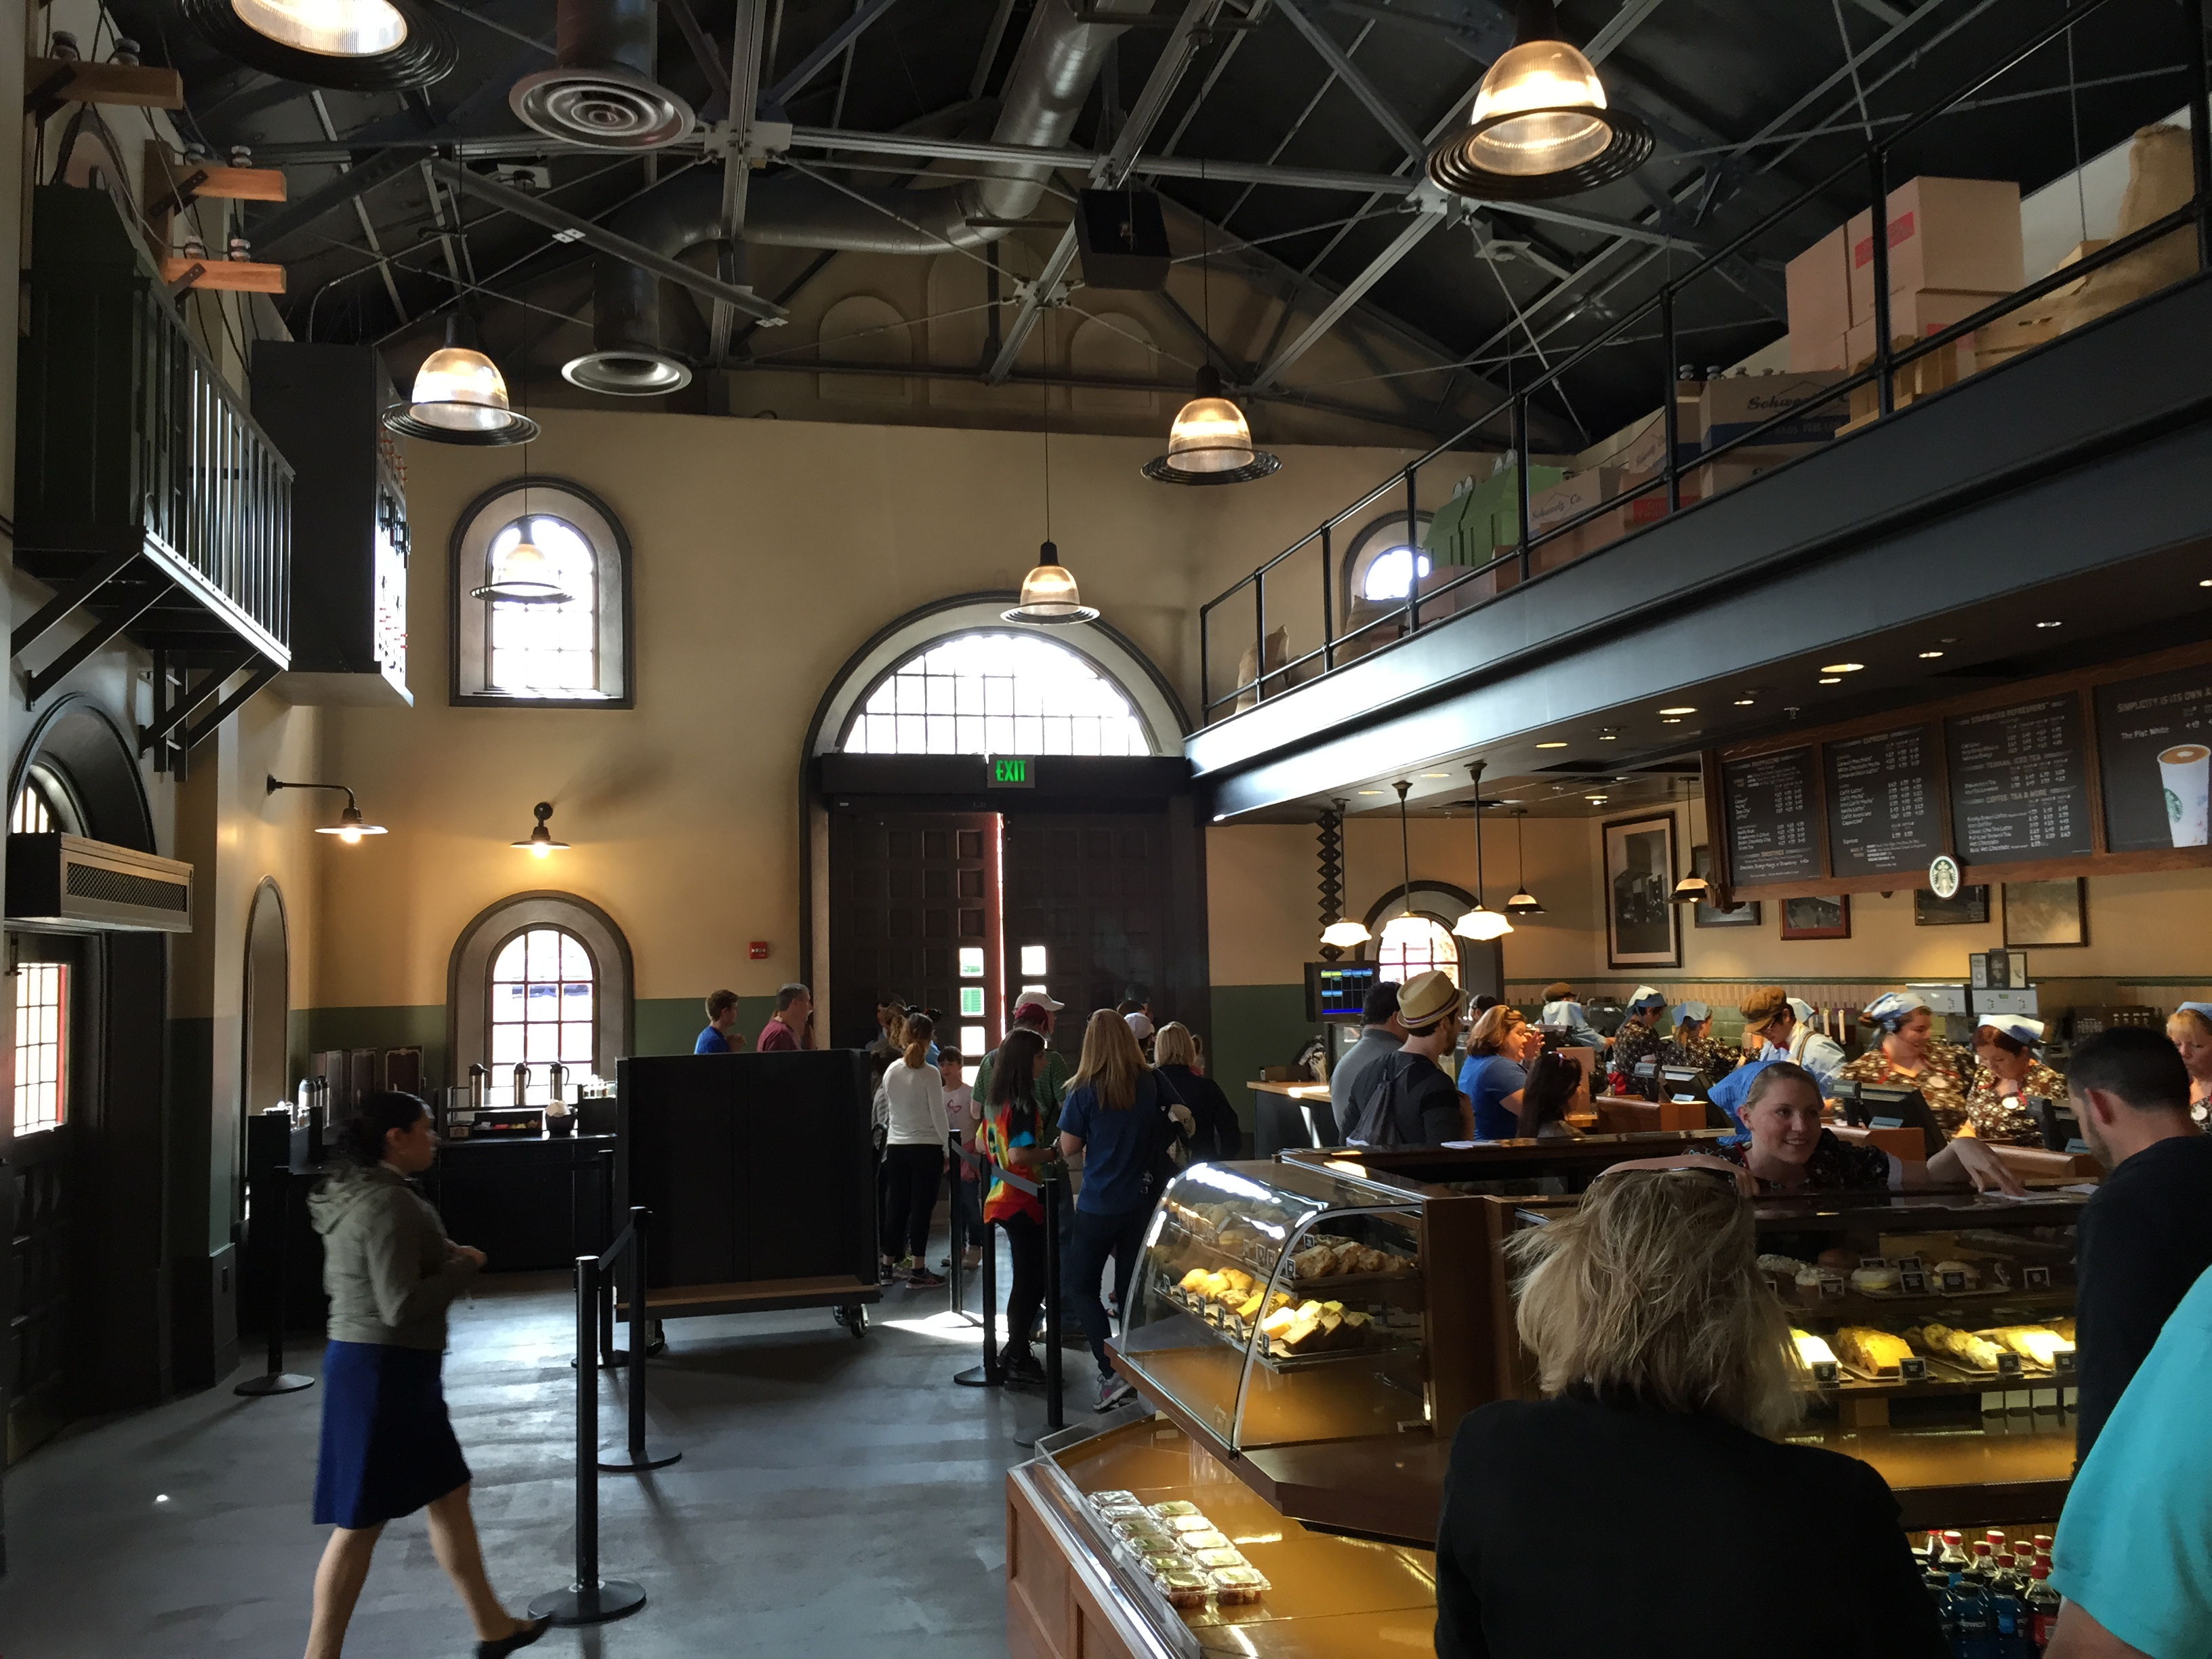 Trolley Car Cafe Starbucks Location Soft Opens at Disney's Hollywood Studios